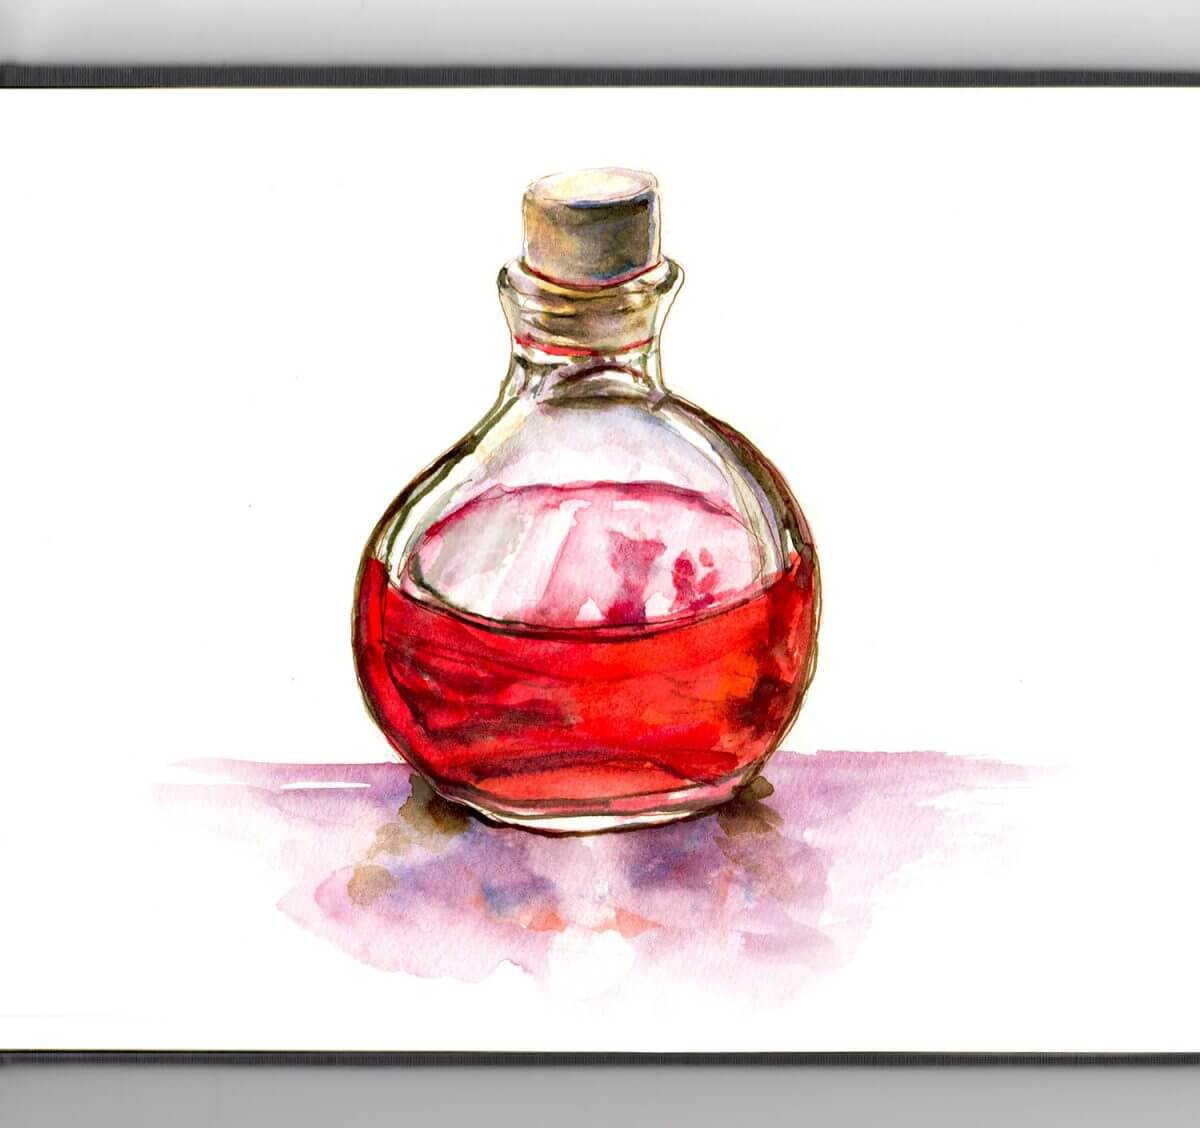 #WorldWatercolorGroup - Day 31_A Magic Potion - Doodlewash